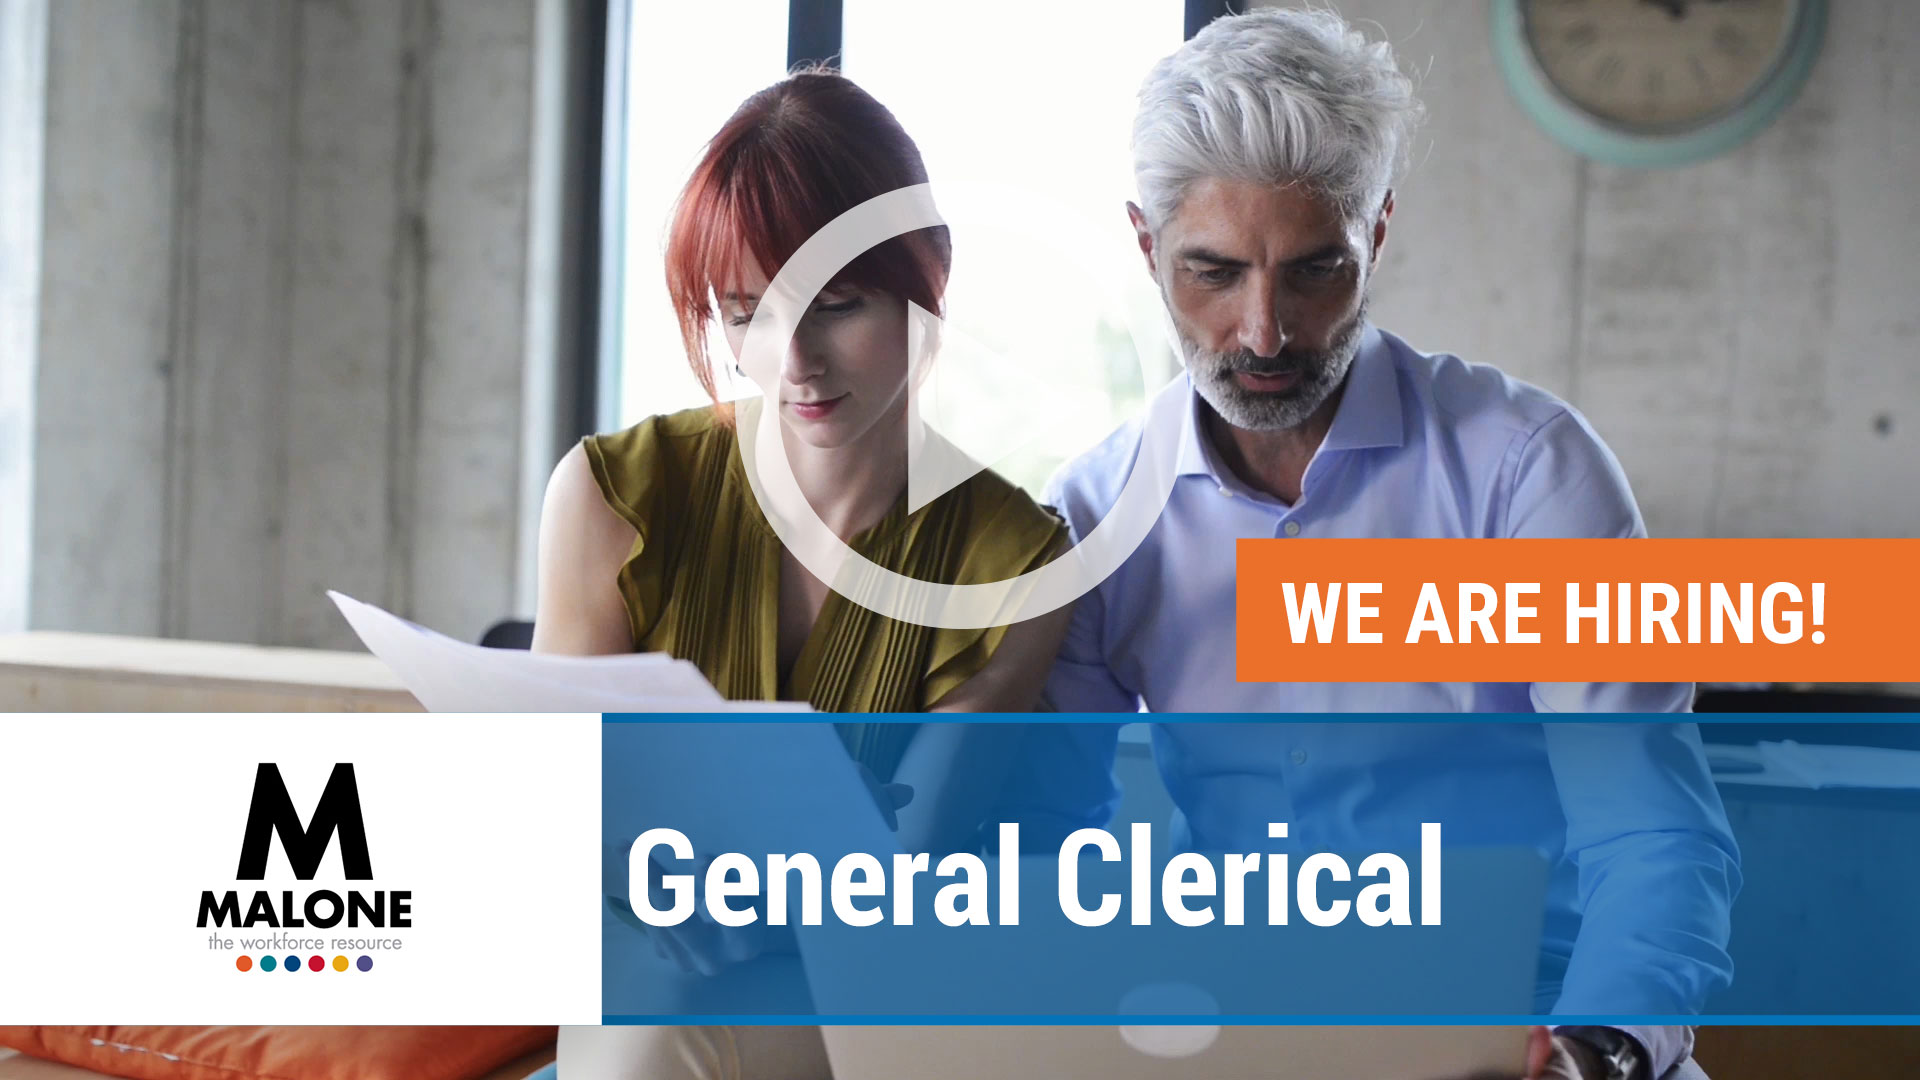 Watch our careers video for available job opening General Clerical in Louisville, Kentucky